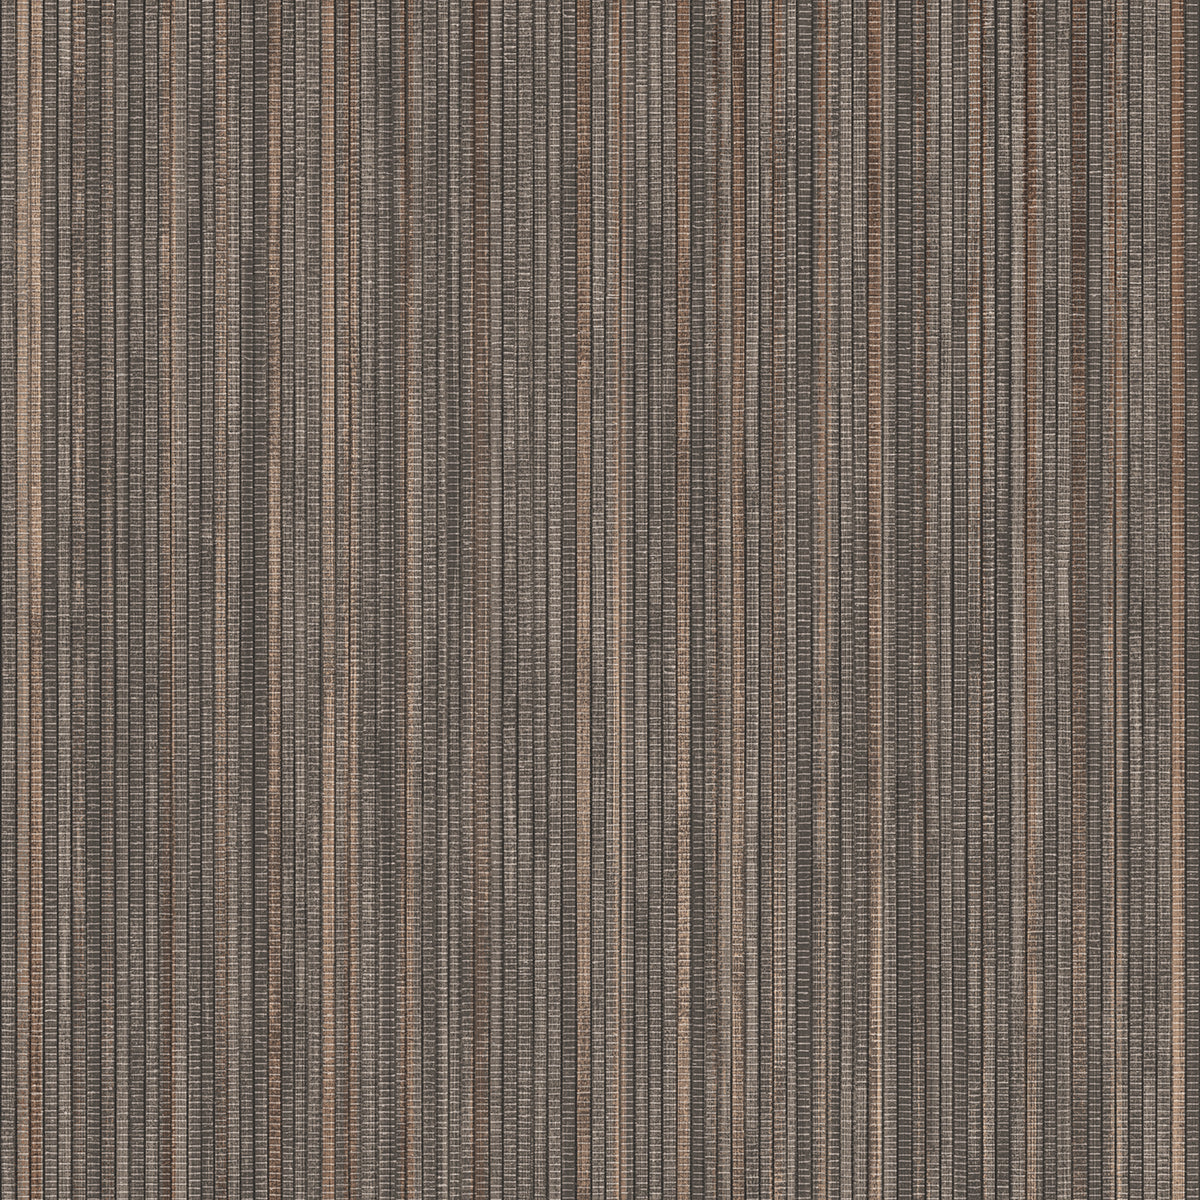 Grasscloth Bronze Textured Self Adhesive Wallpaper By